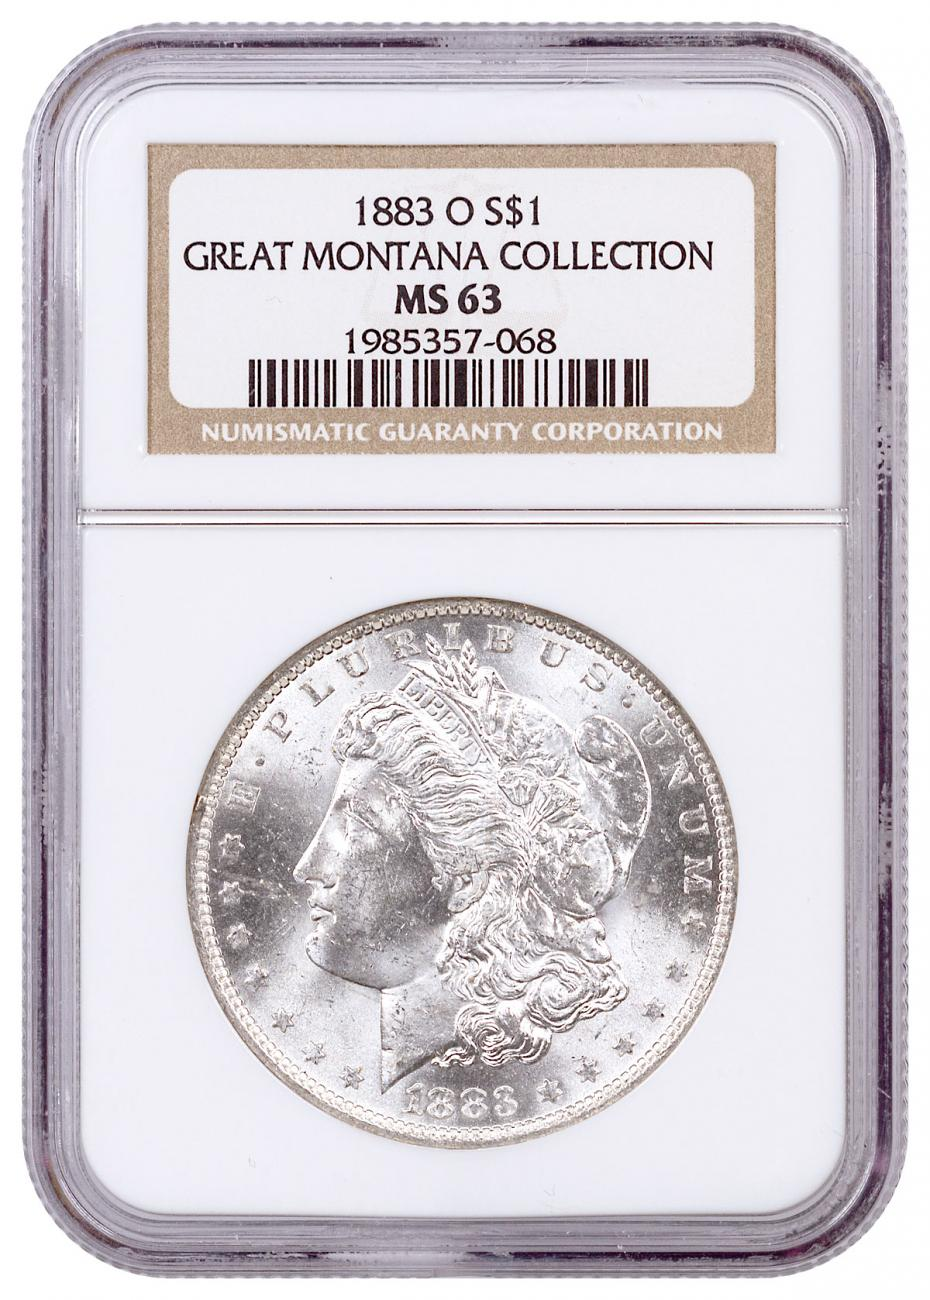 1883-O Morgan Silver Dollar From the Great Montana Collection NGC MS63 Toned CPCR 068